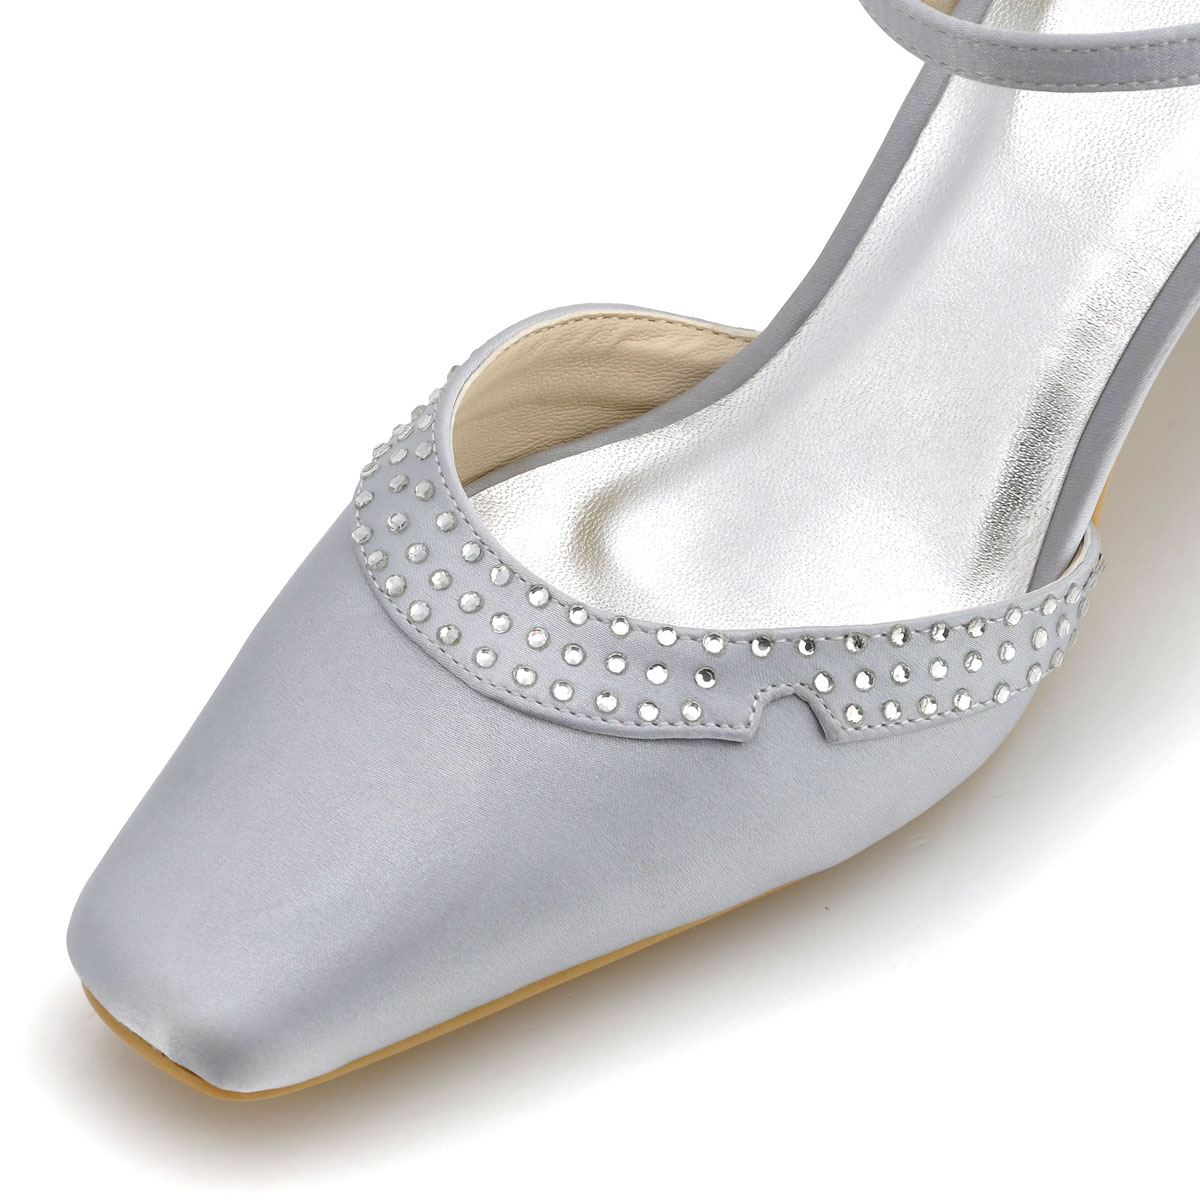 Shop your favourite women's shoe styles, ankle boots, wedges, ballet flats, pumps, sandals, high heels, boots & stiletto heels in South Africa. Express delivery around Johannesburg, Cape Town & .